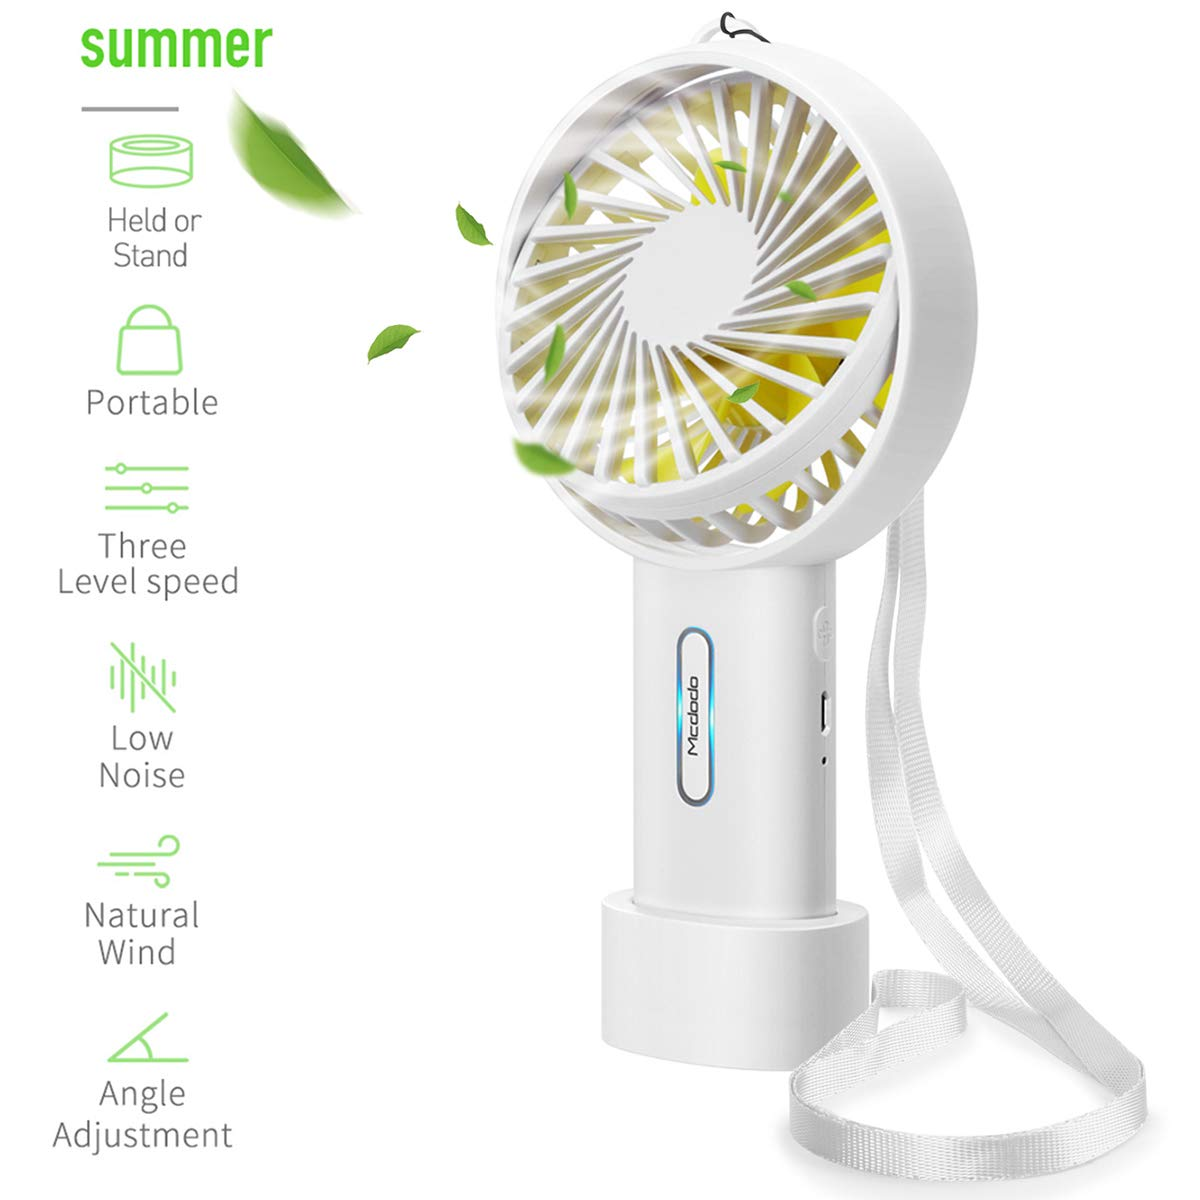 AICase Mini Handheld Fan, Portable Desk Stroller Table Fan with USB Rechargeable Battery Cooling Folding Electric Personal Fan Handheld Fan for Office Room Outdoor Household Traveling (White)